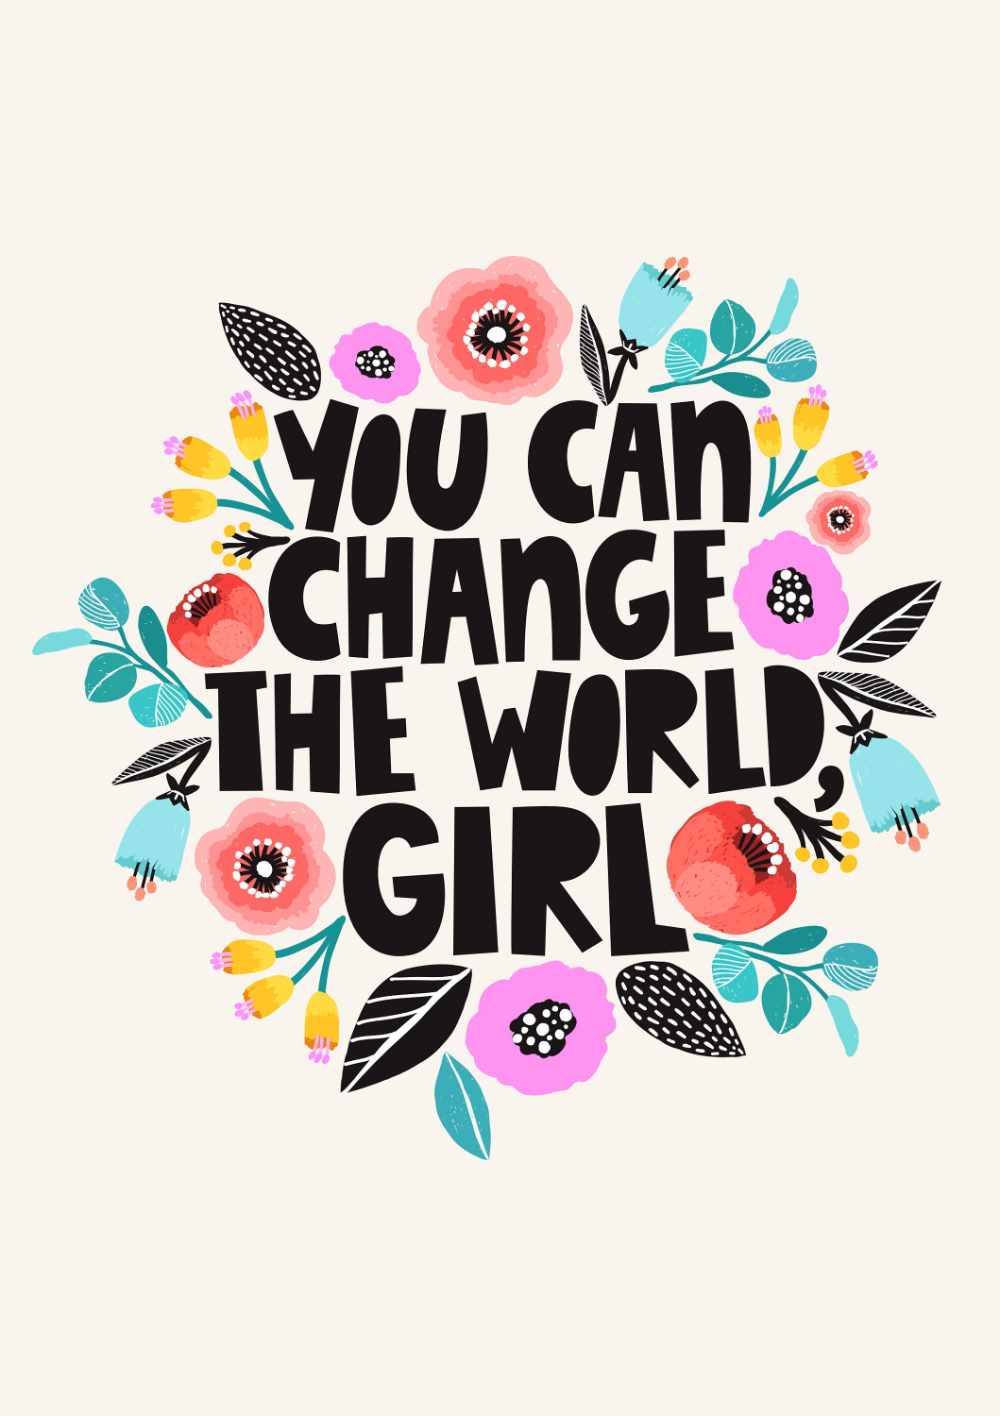 Above Bed Print Quote Girl Power Print Feminist Poster Art Print Woman Poster Strong Female Art Empowered Quote Prints Women Poster Posters Art Prints